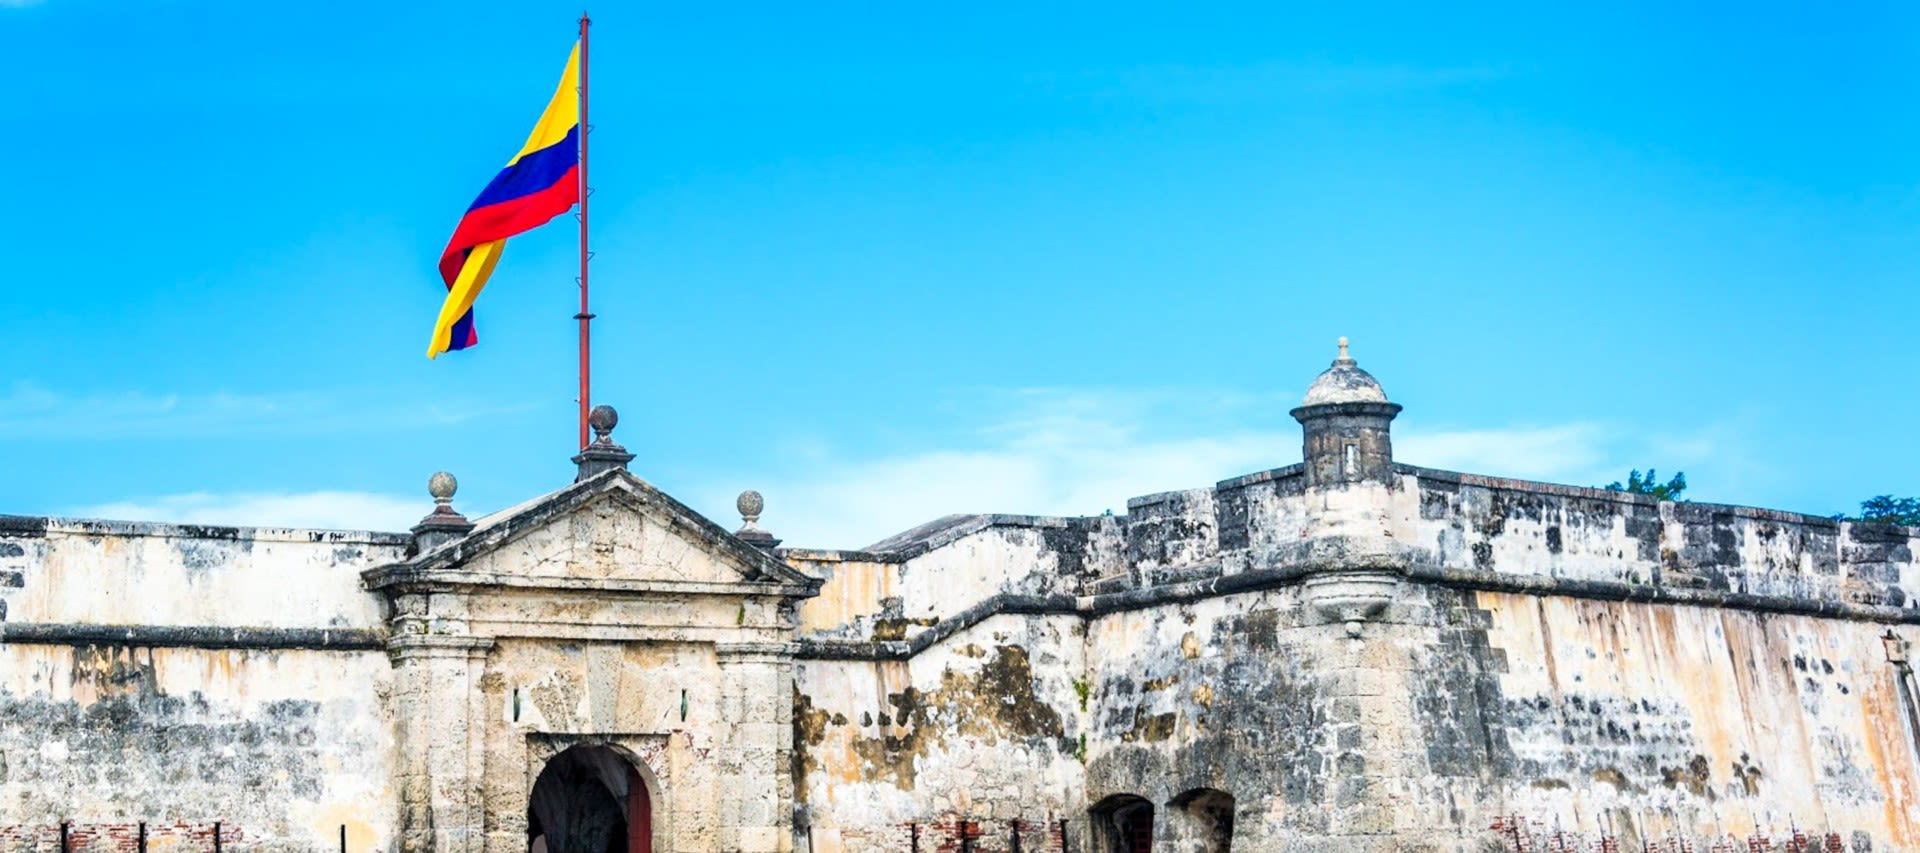 Colorful flag on top of Cartagena fortress wall. One of the many things to do in cartagena